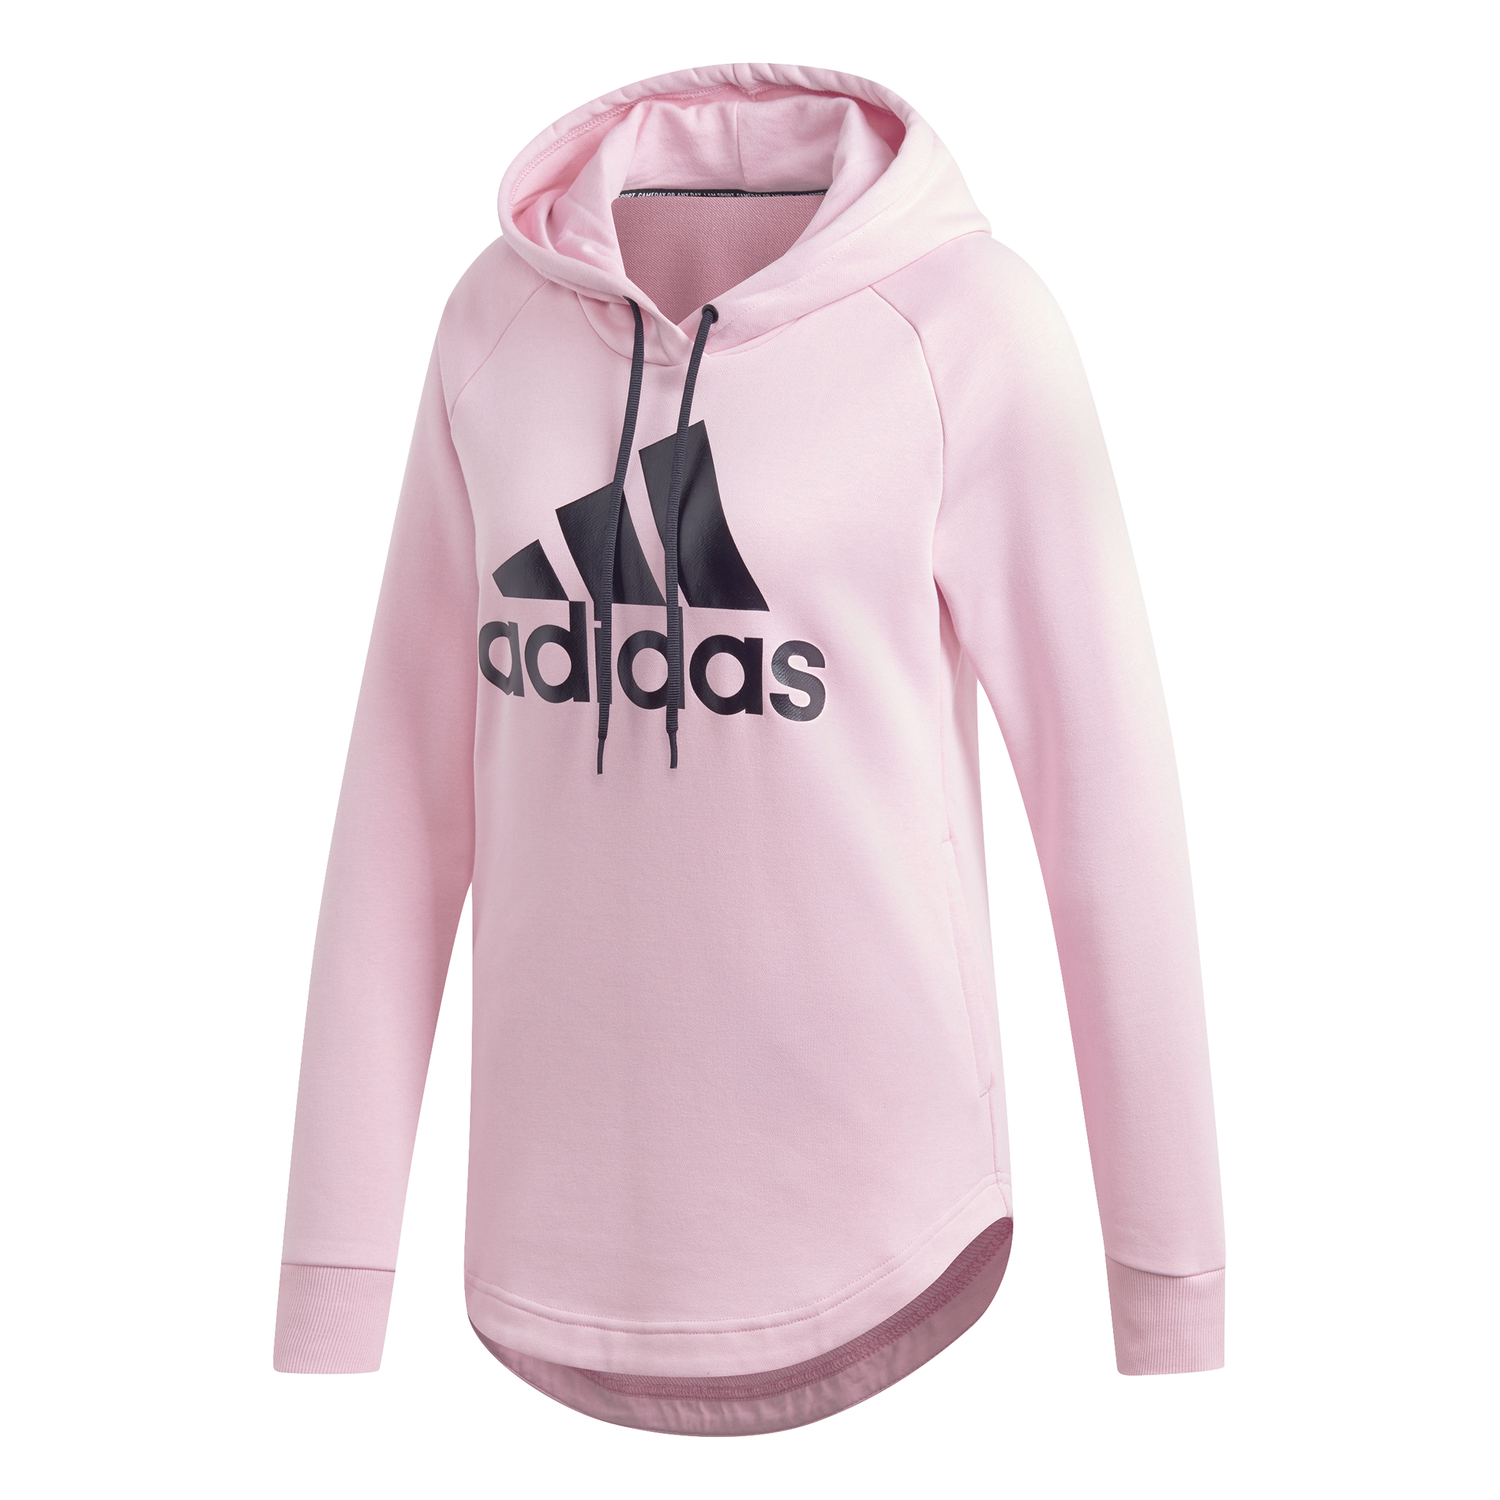 BLUZA DAMSKA ADIDAS MUST HAVES BADGE OF SPORT OVER HEAD HOODIE RÓŻOWA DX2536